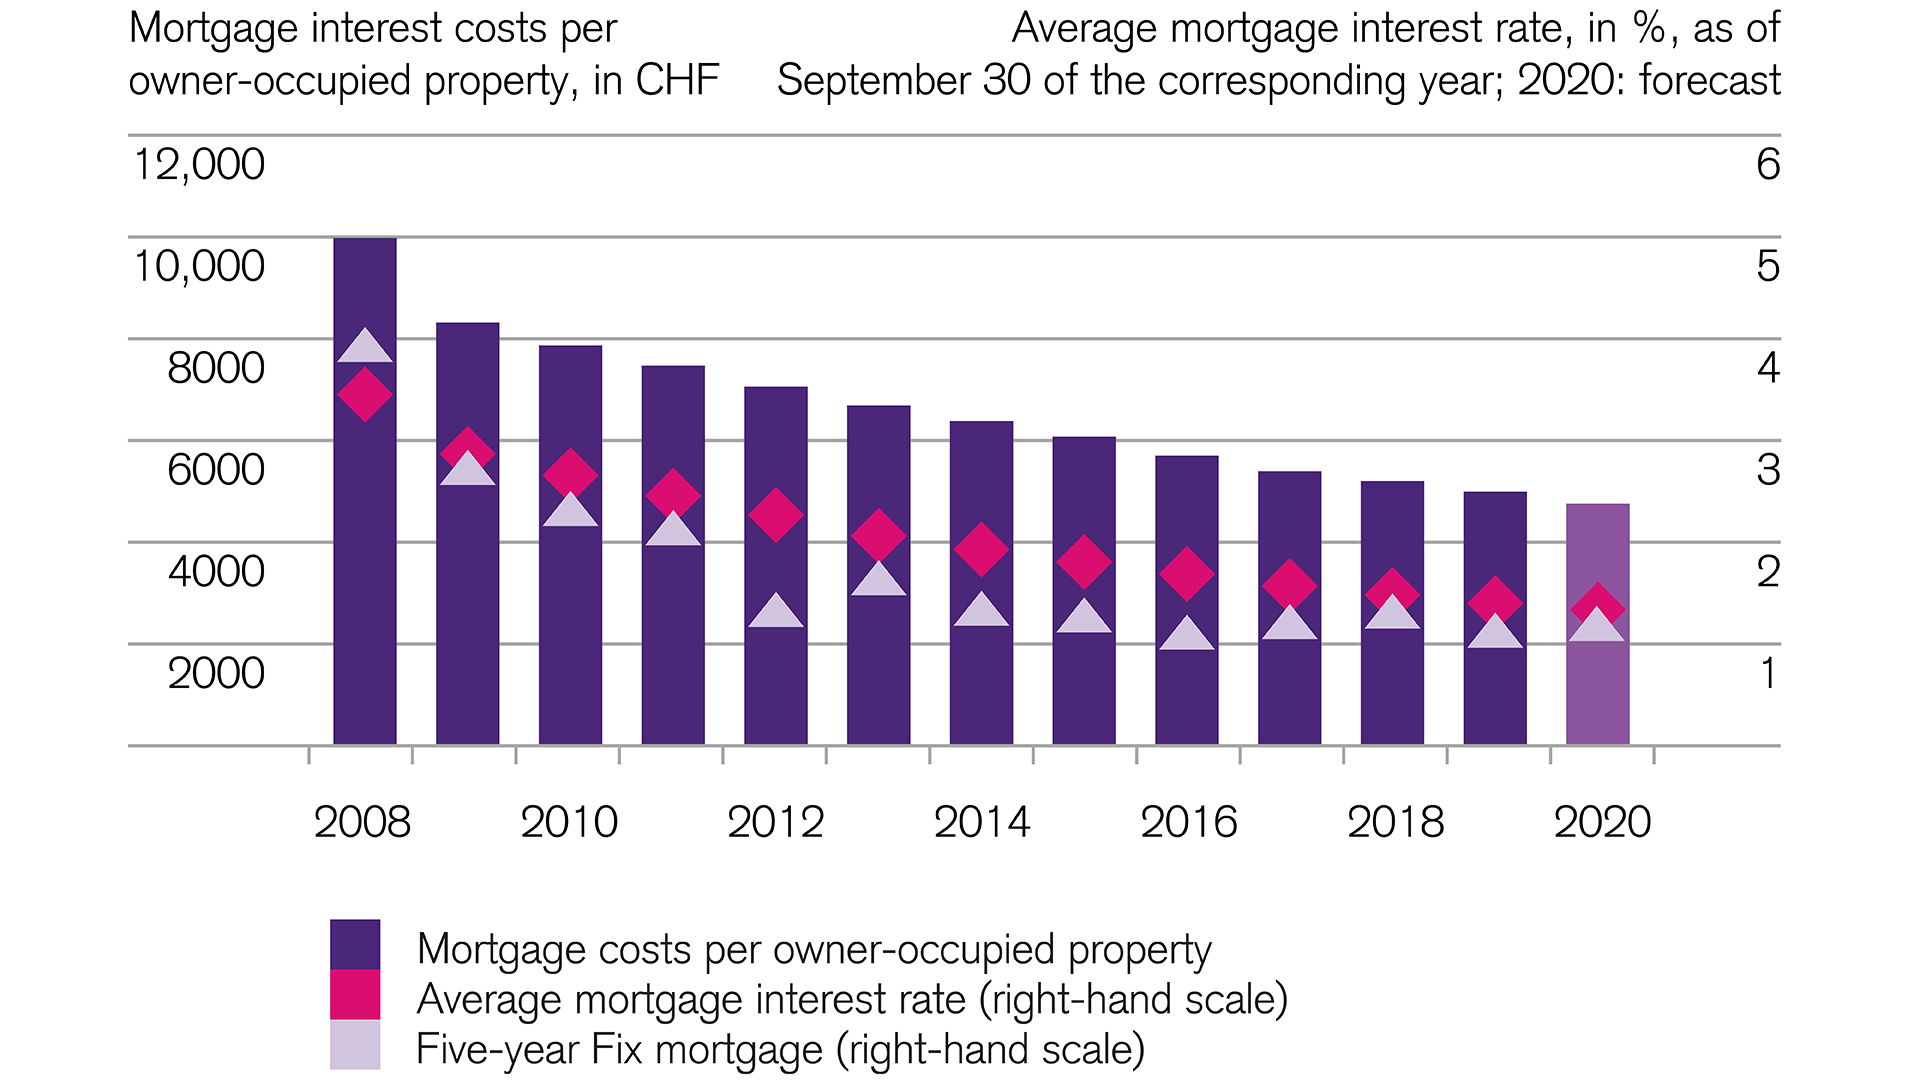 Financial markets: Mortgage interest costs have fallen